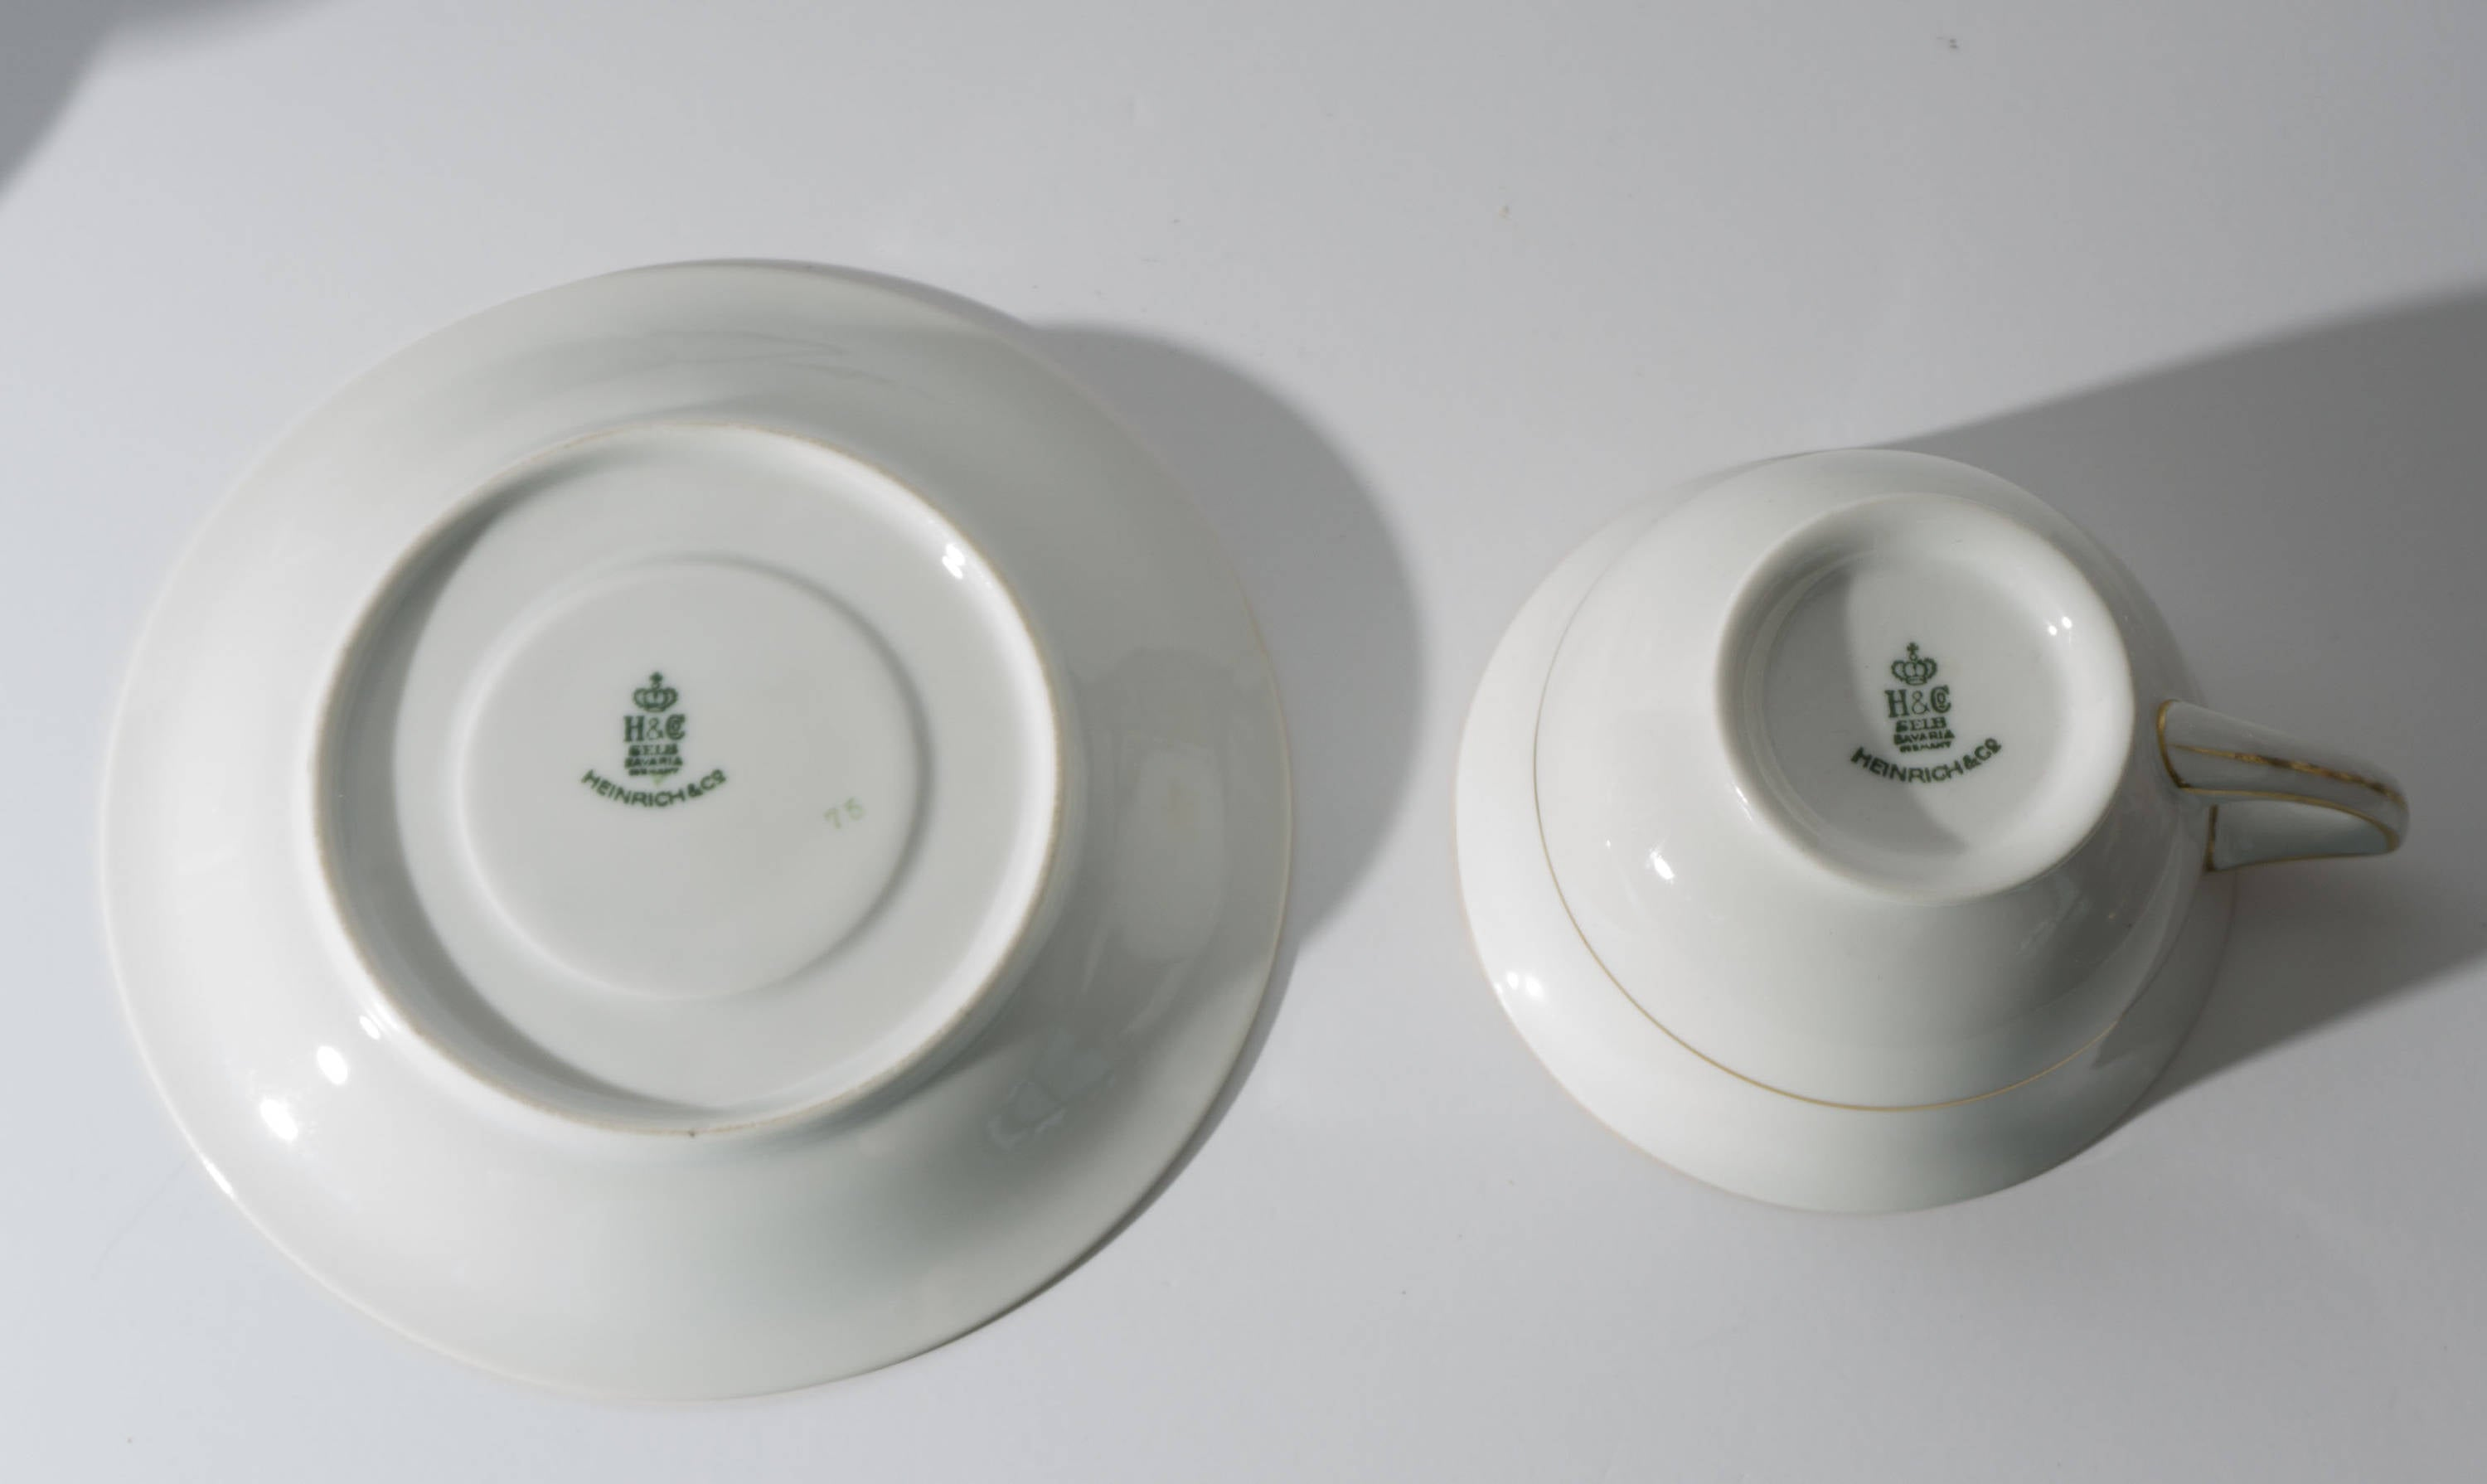 Antique Bavarian China Heinrich & Co Pattern 10263 Cup / Saucer Set